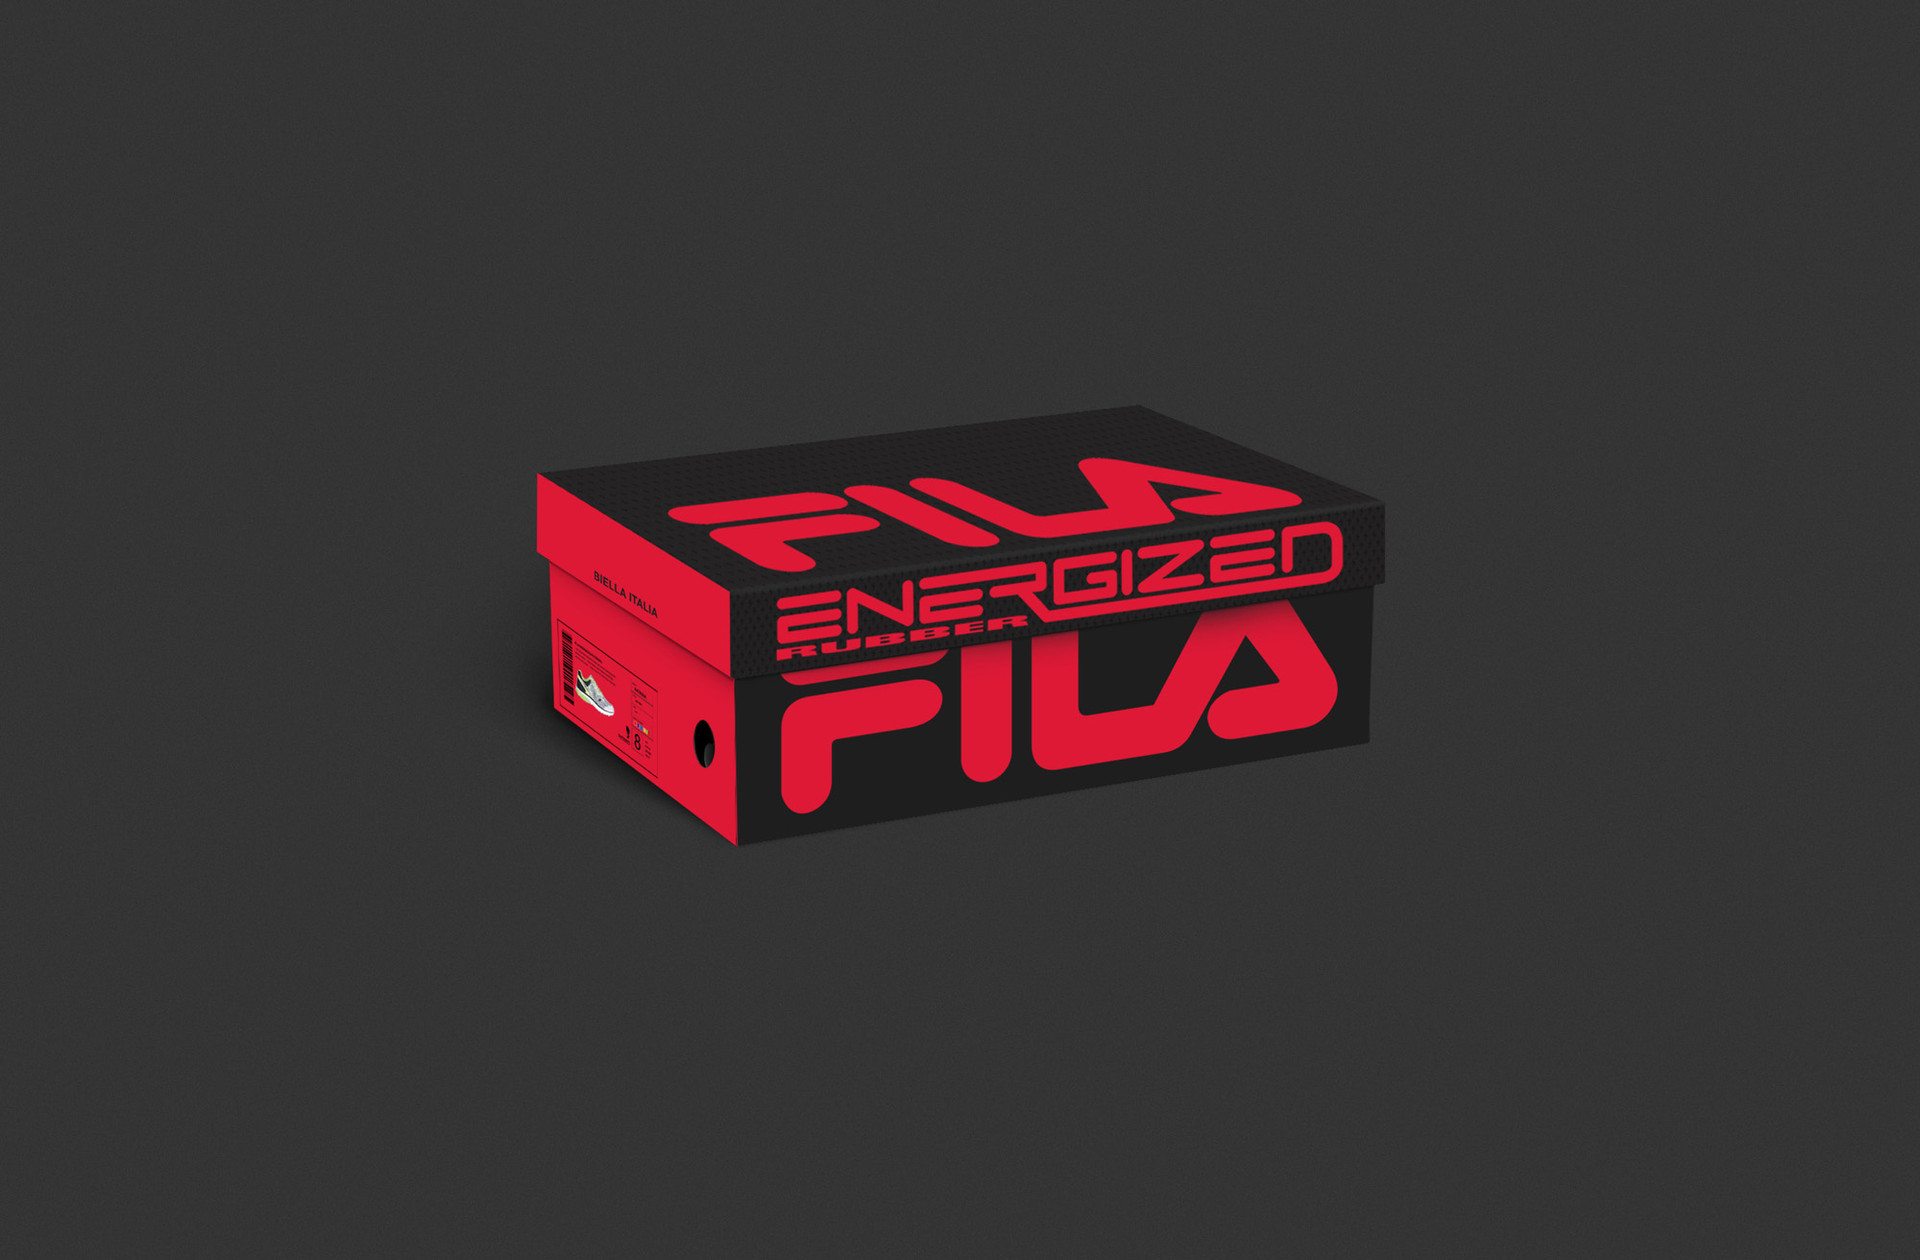 Fila - Energized Box 3.jpg